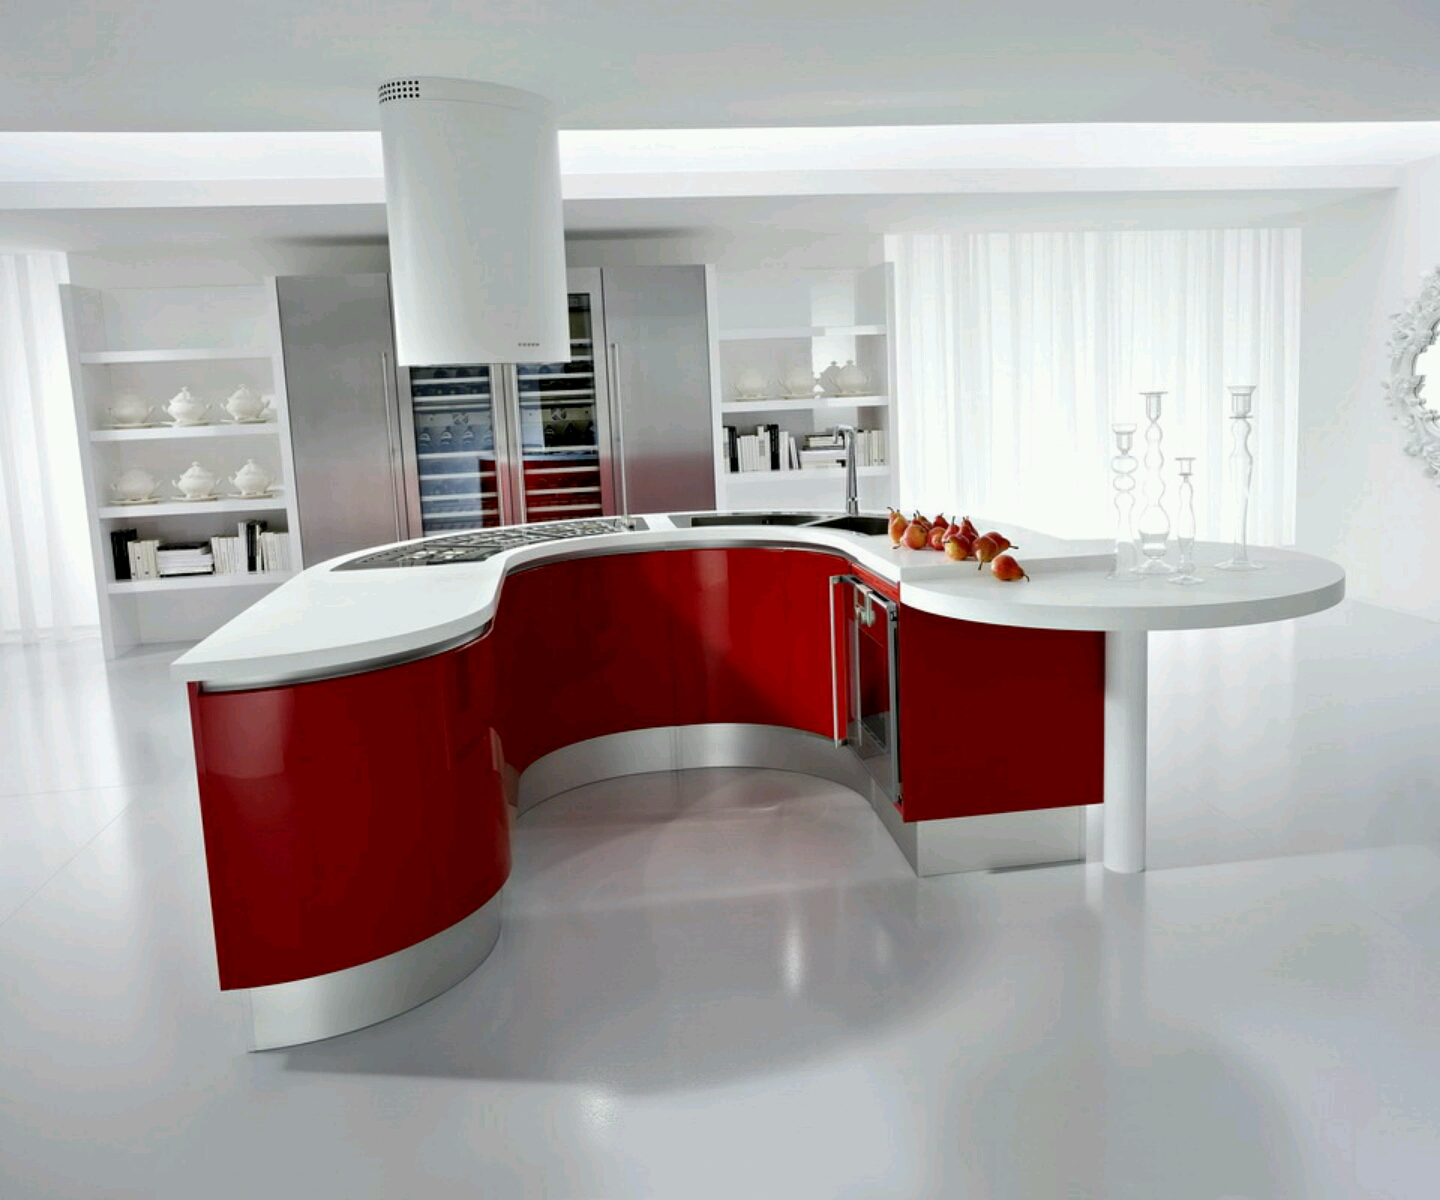 Perfect Modern Kitchen CabiDesign Ideas 1440 x 1200 · 779 kB · jpeg